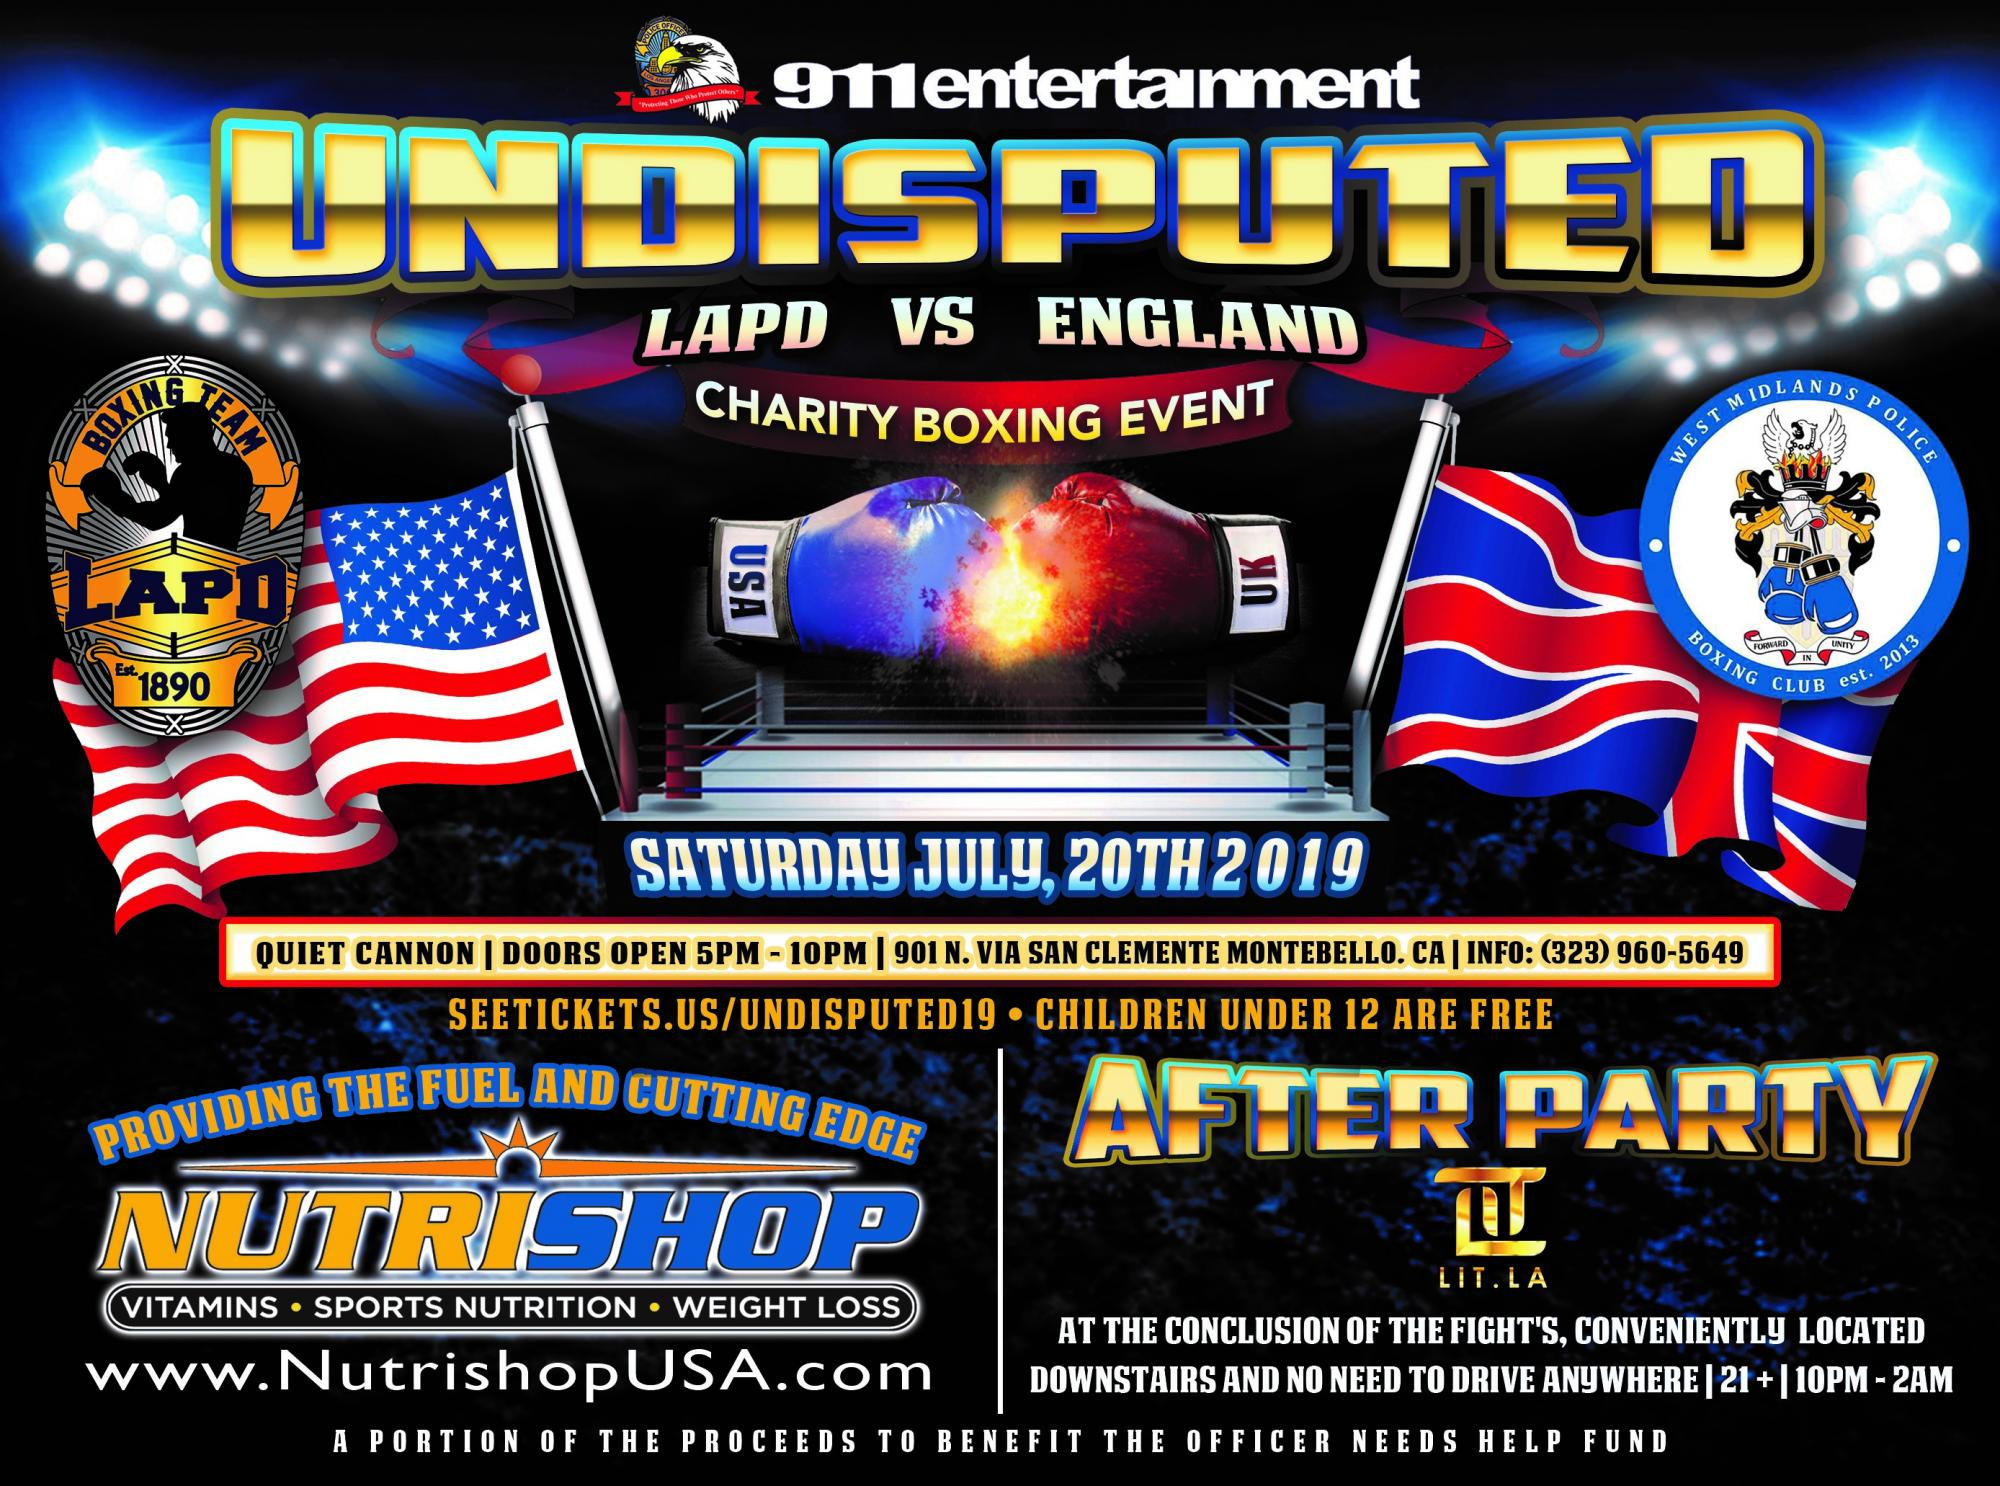 LAPD vs  England Charity Boxing Event   LAPPL - Los Angeles